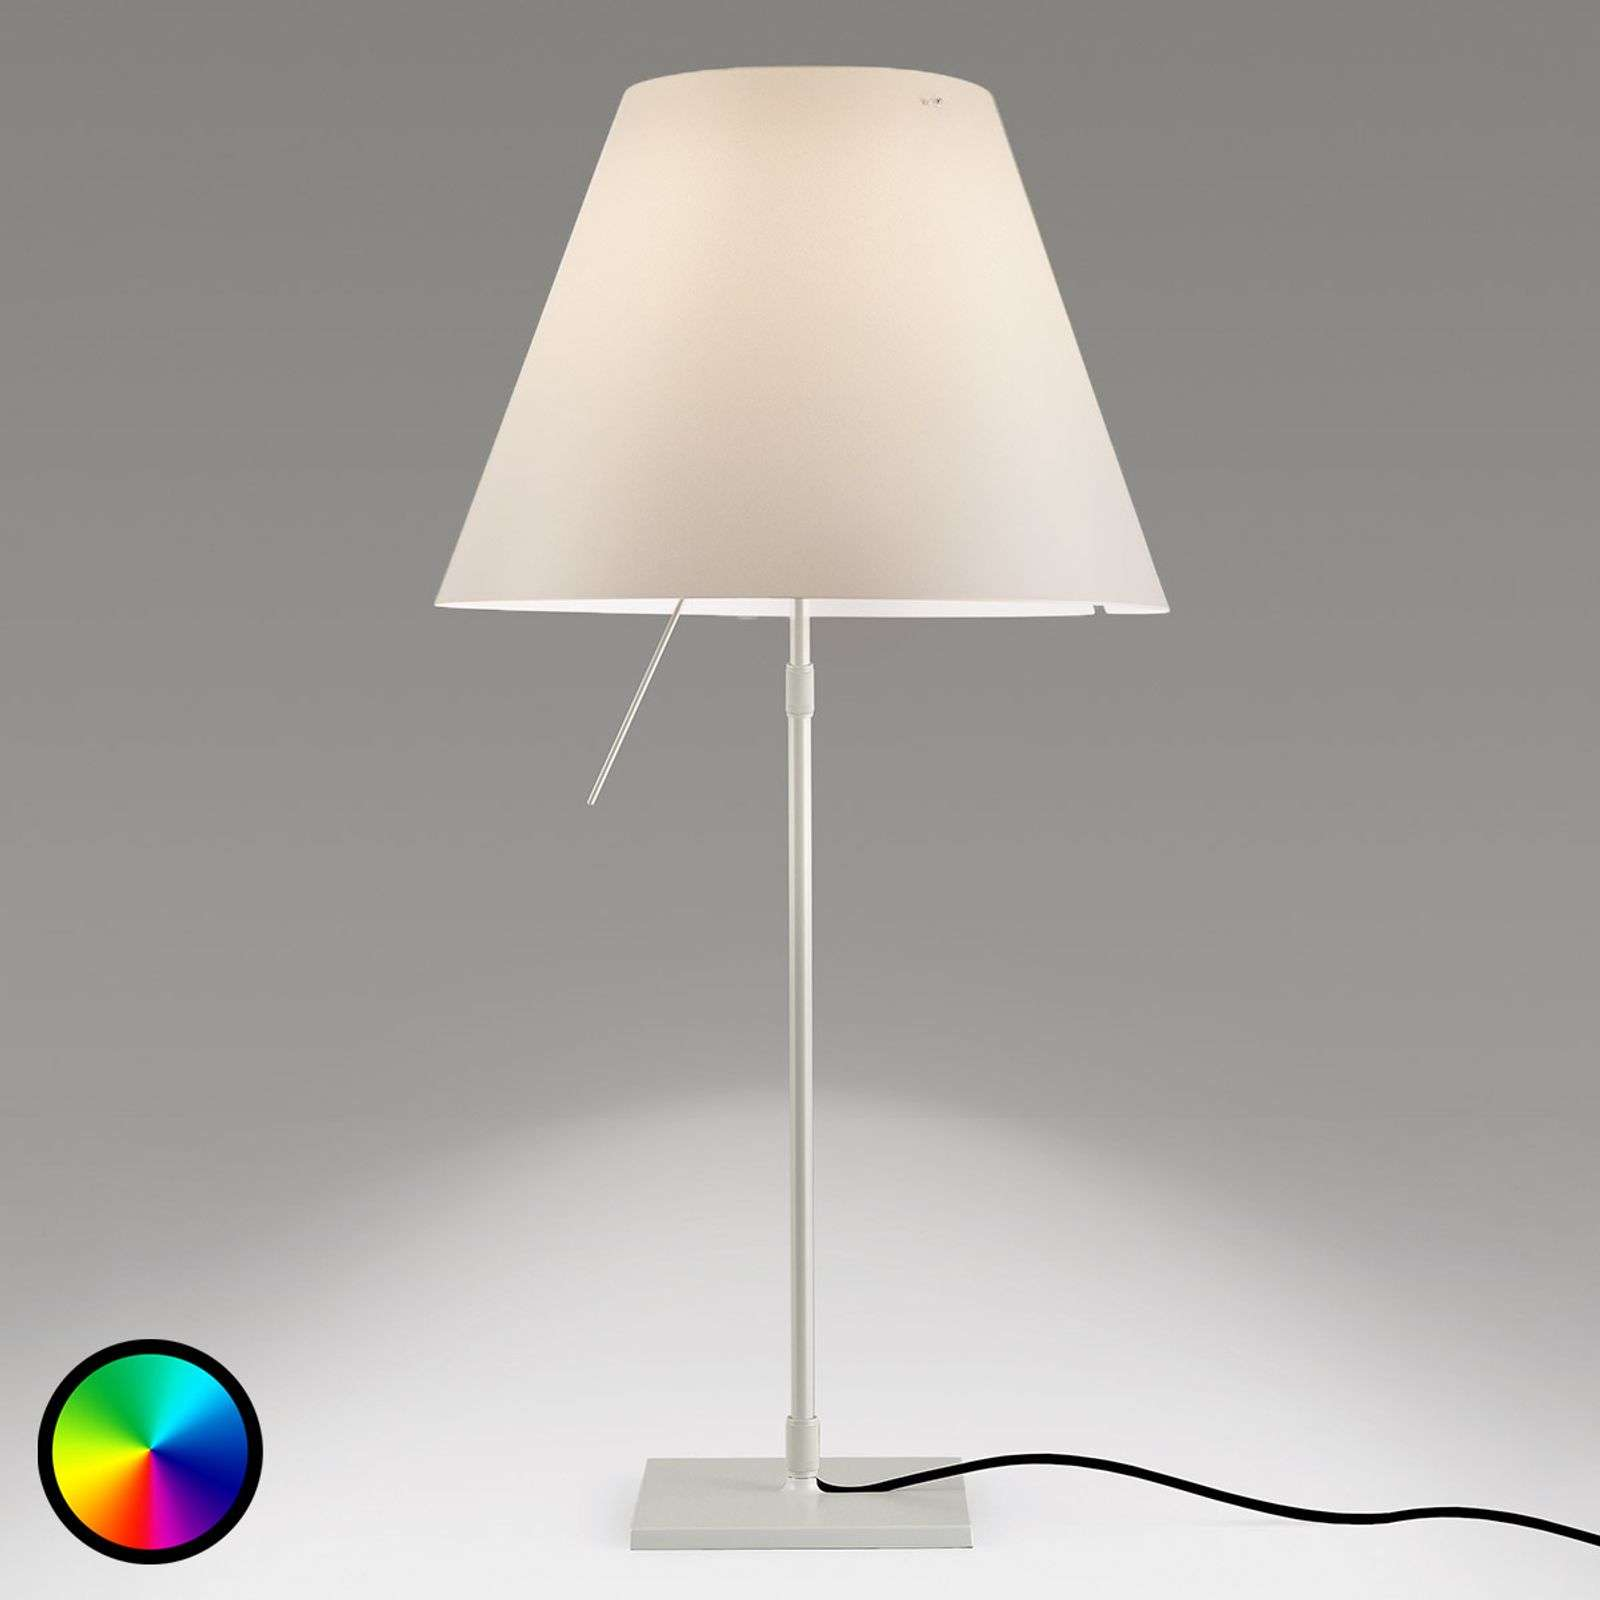 Lampada LED Costanza con comando Philips-Hue